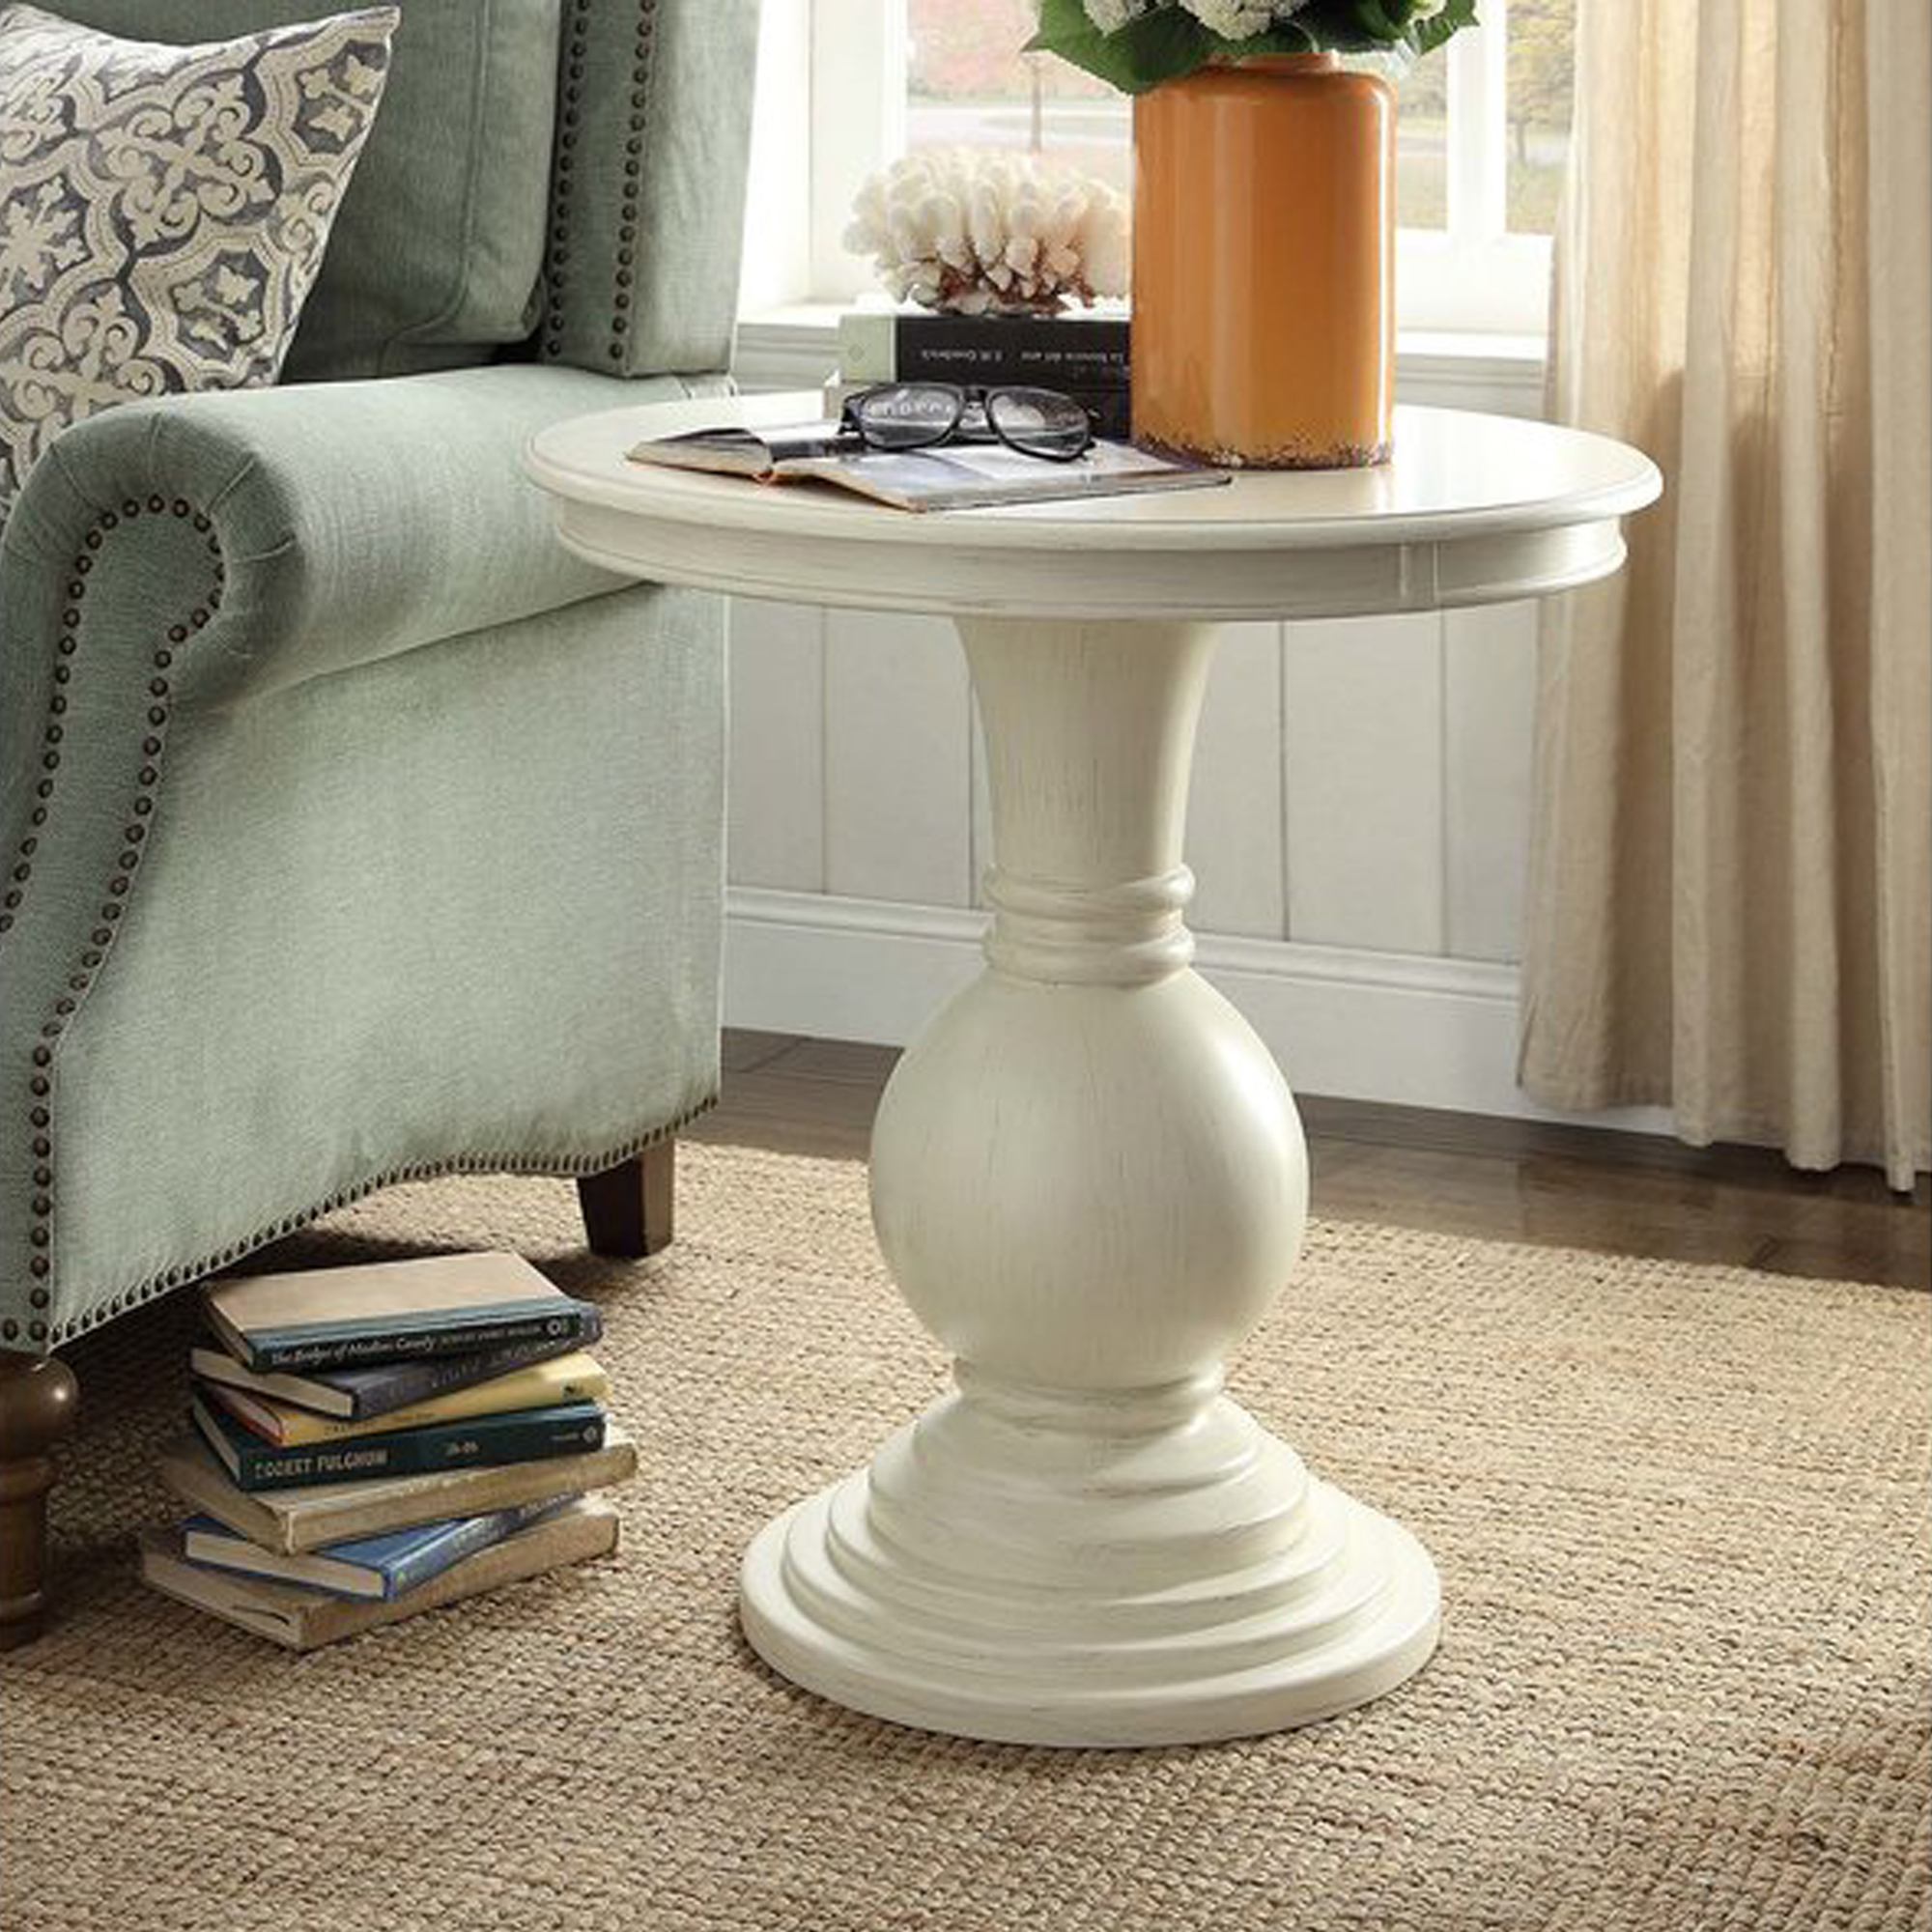 tall pedestal accent table design ideas round end tables side lamp for wrought iron small black distressed off white best accentuate your living vintage drop leaf dining inch high